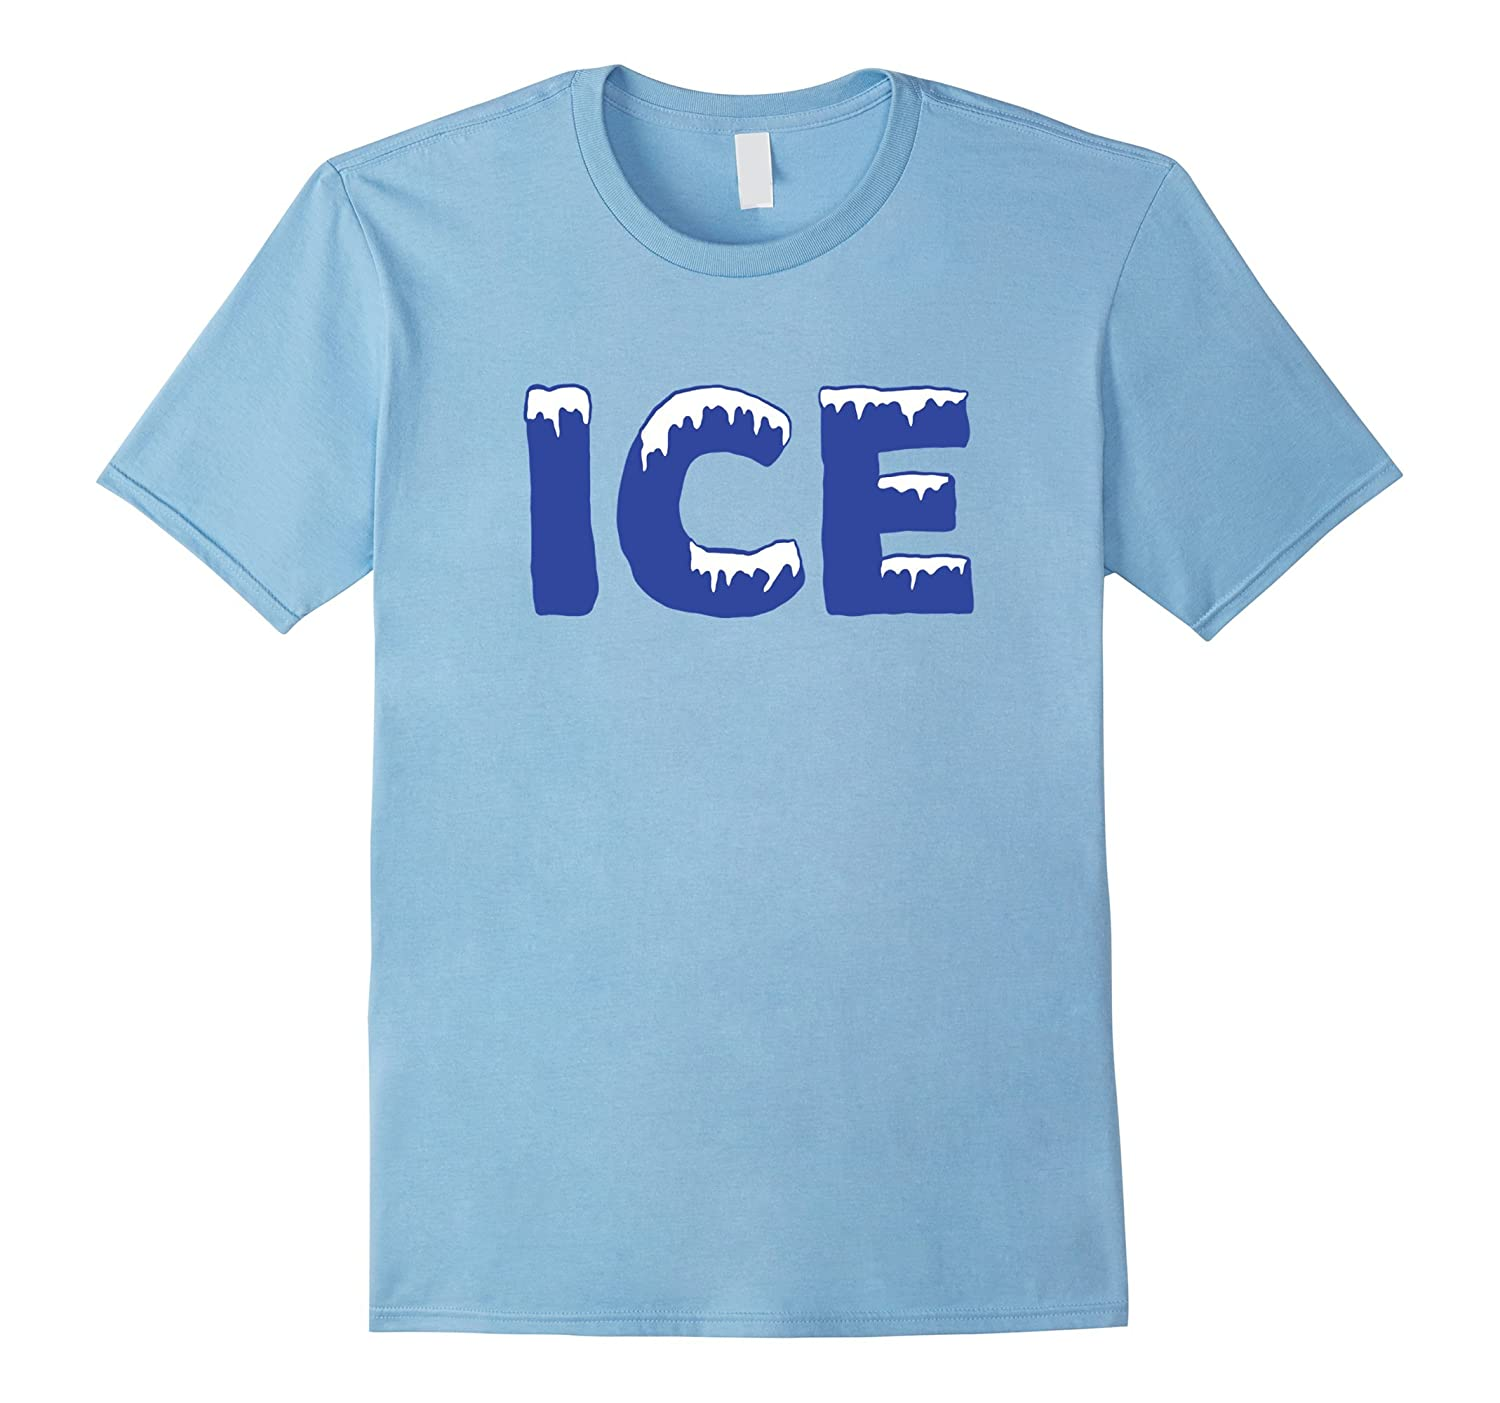 Funny Family Halloween Costume Shirt - Ice and Baby-FL